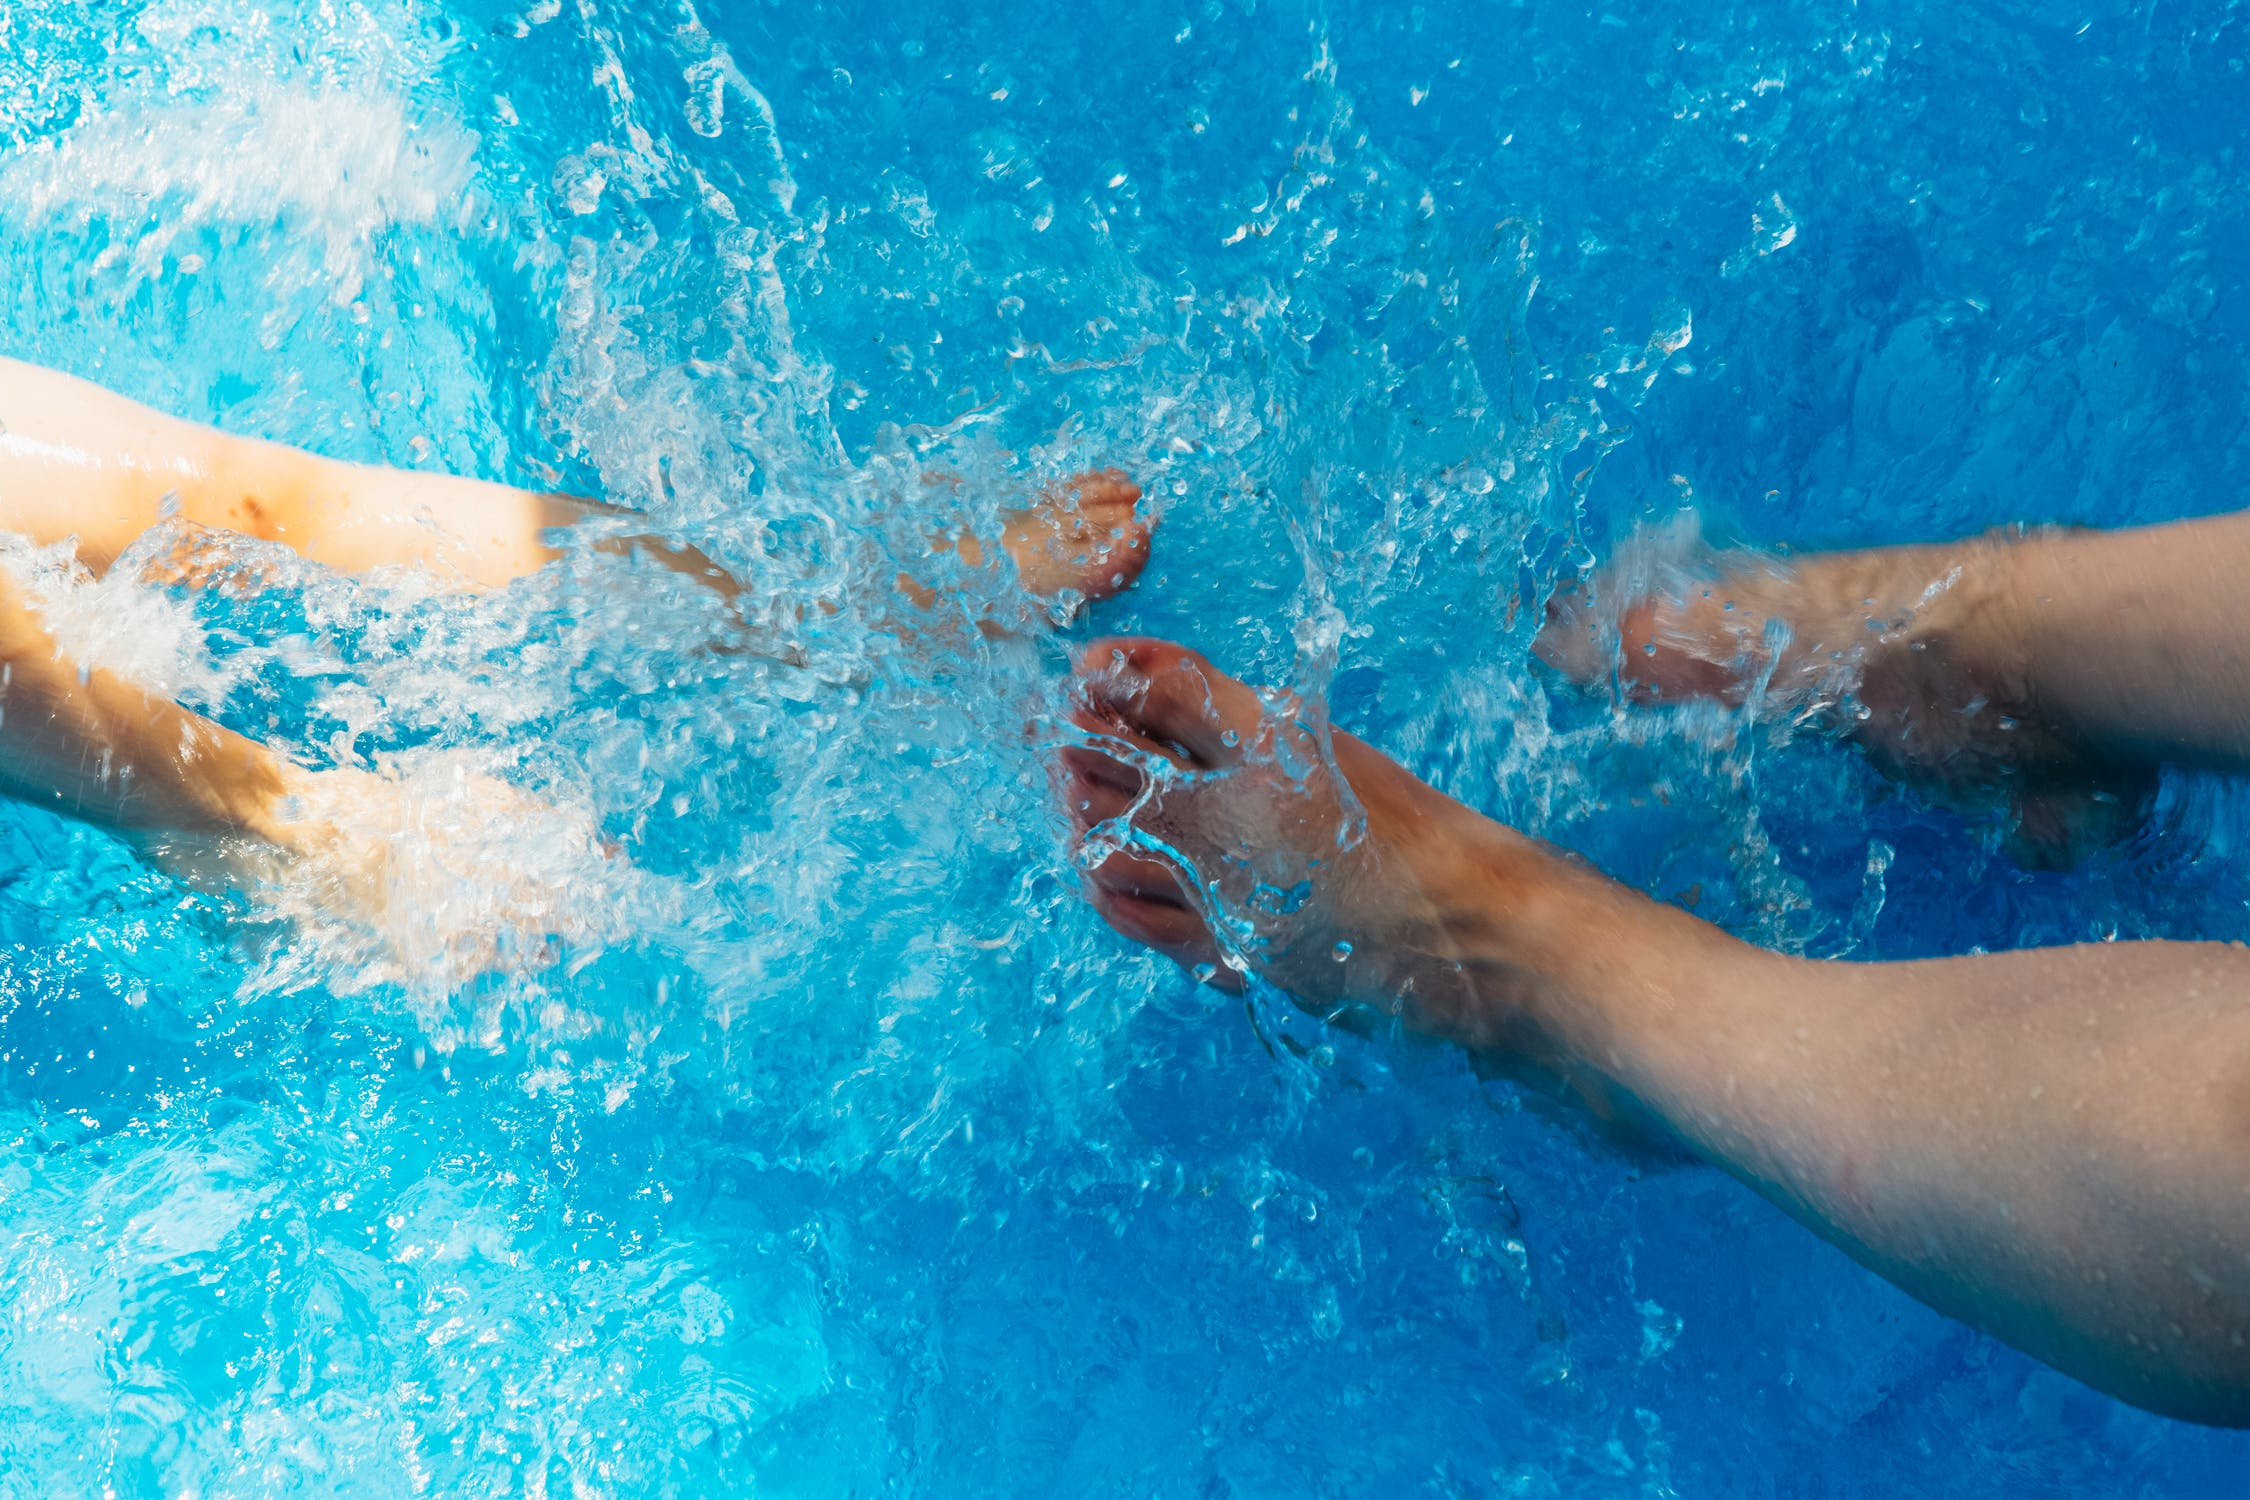 LGBT Lawyers a picture of feet in a swimming pool before ordinary negligence